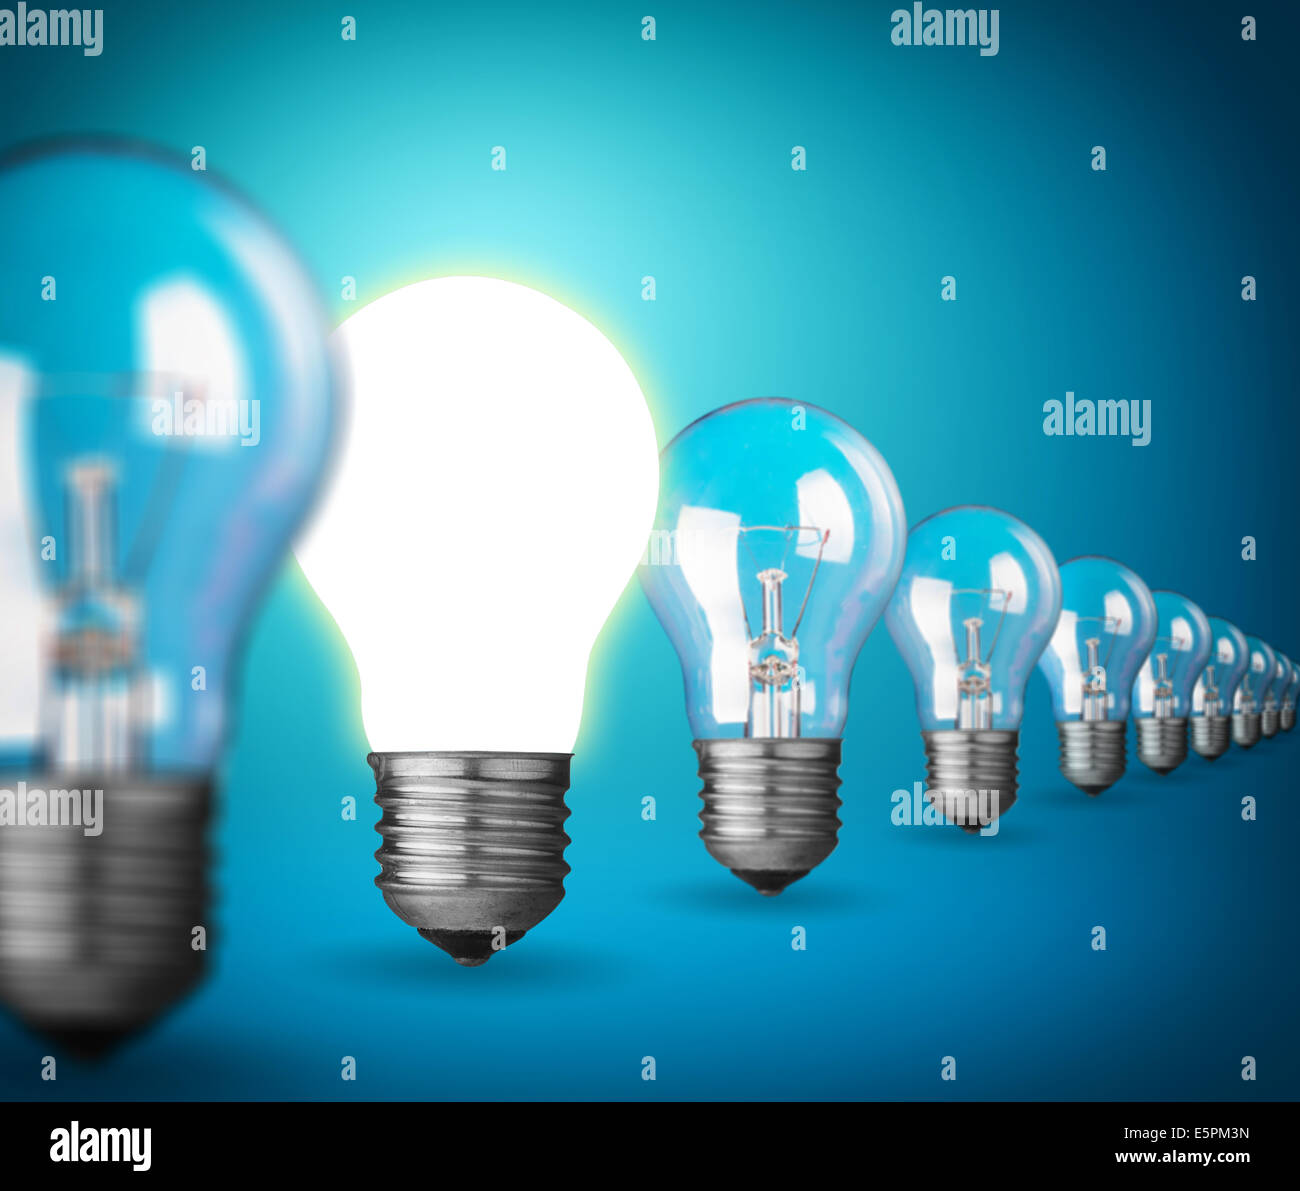 Idea concept with light bulbs on blue - Stock Image